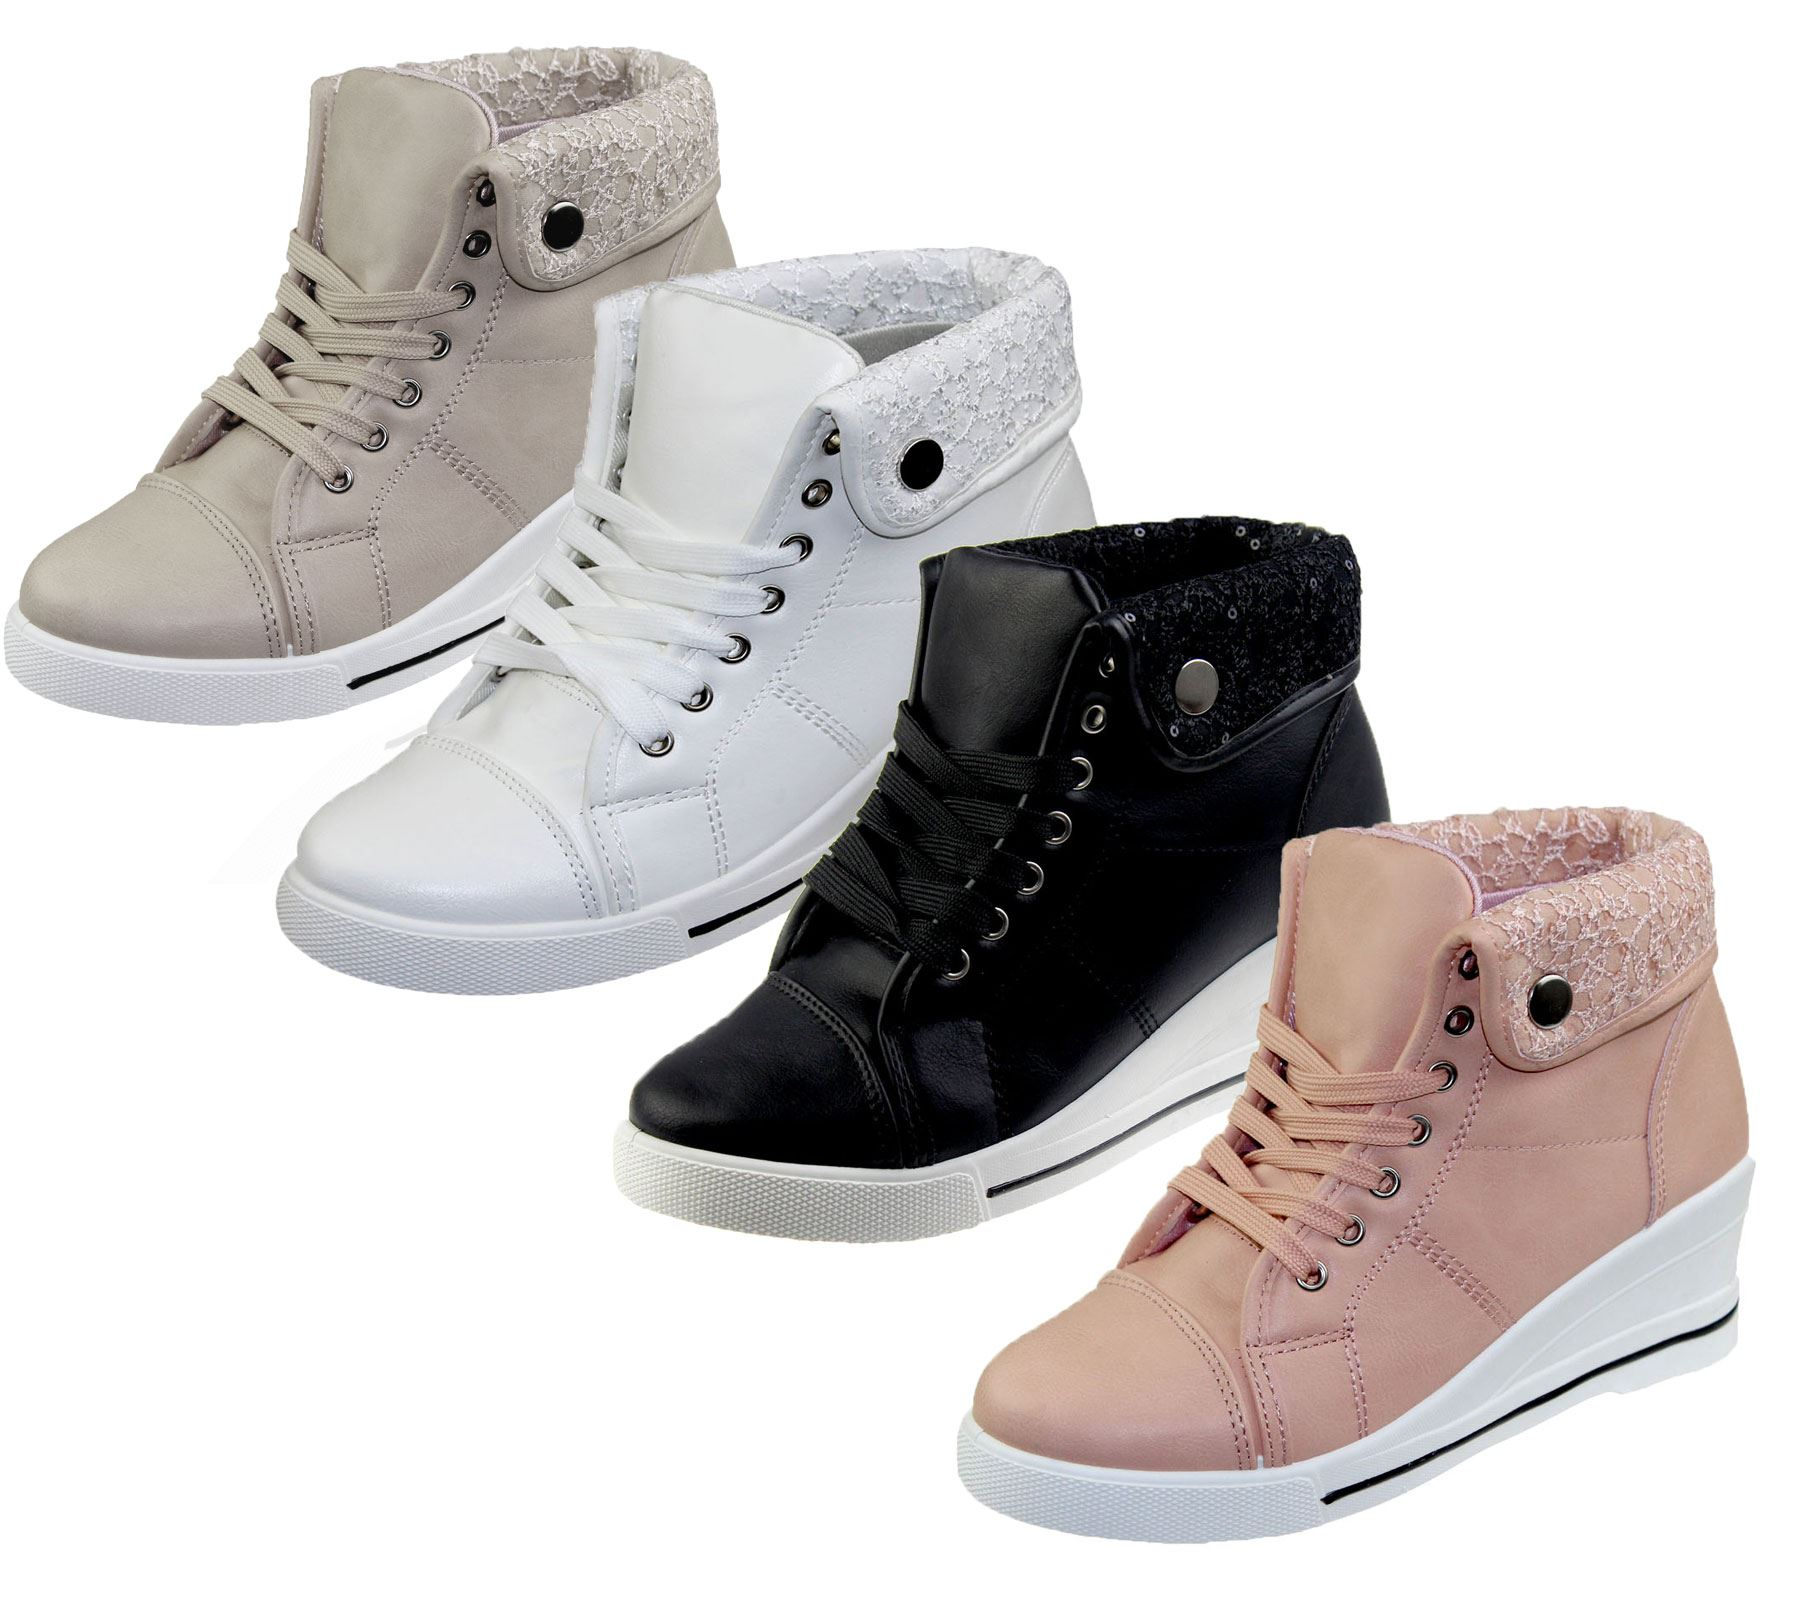 WOMENS WEDGE HEEL FAUX LEATHER HIGH TOP BOOTS LADIES ANKLE SNEAKER ...